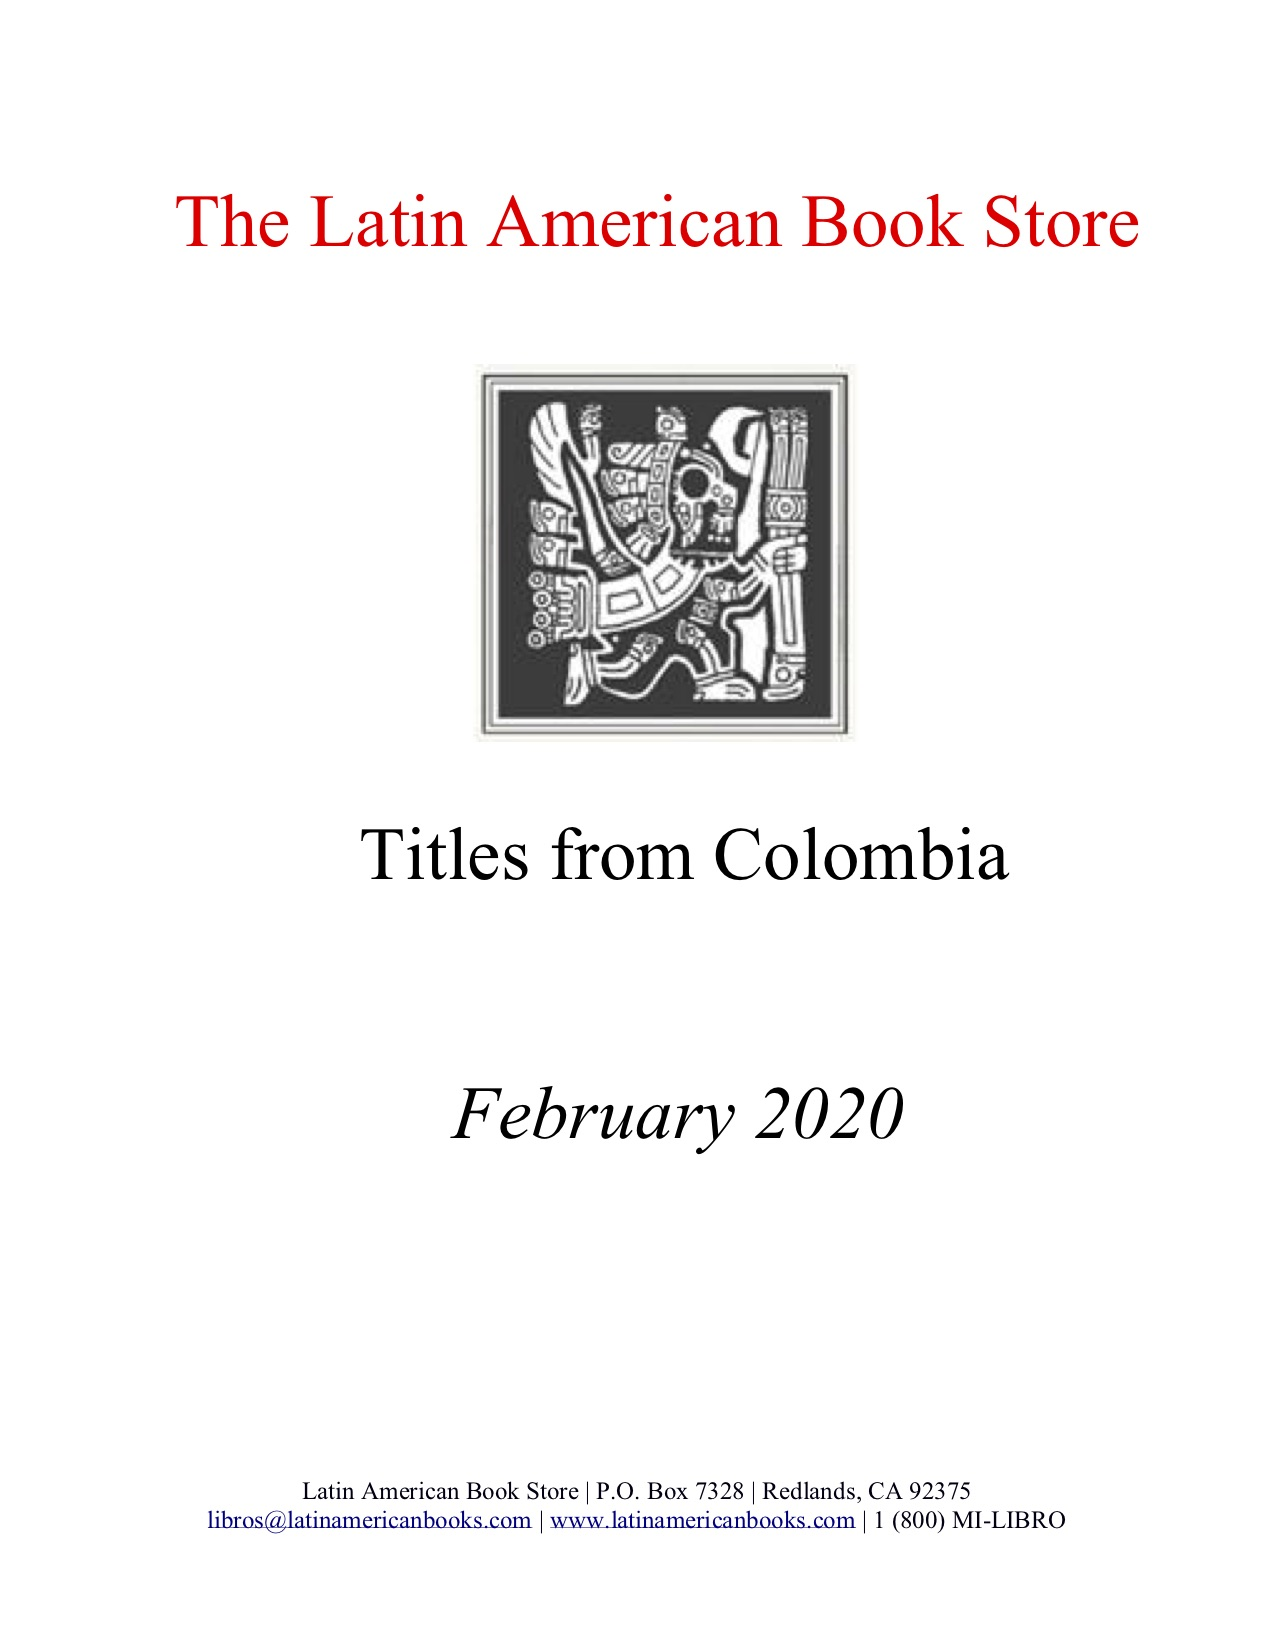 Colombian Titles -- February 2020